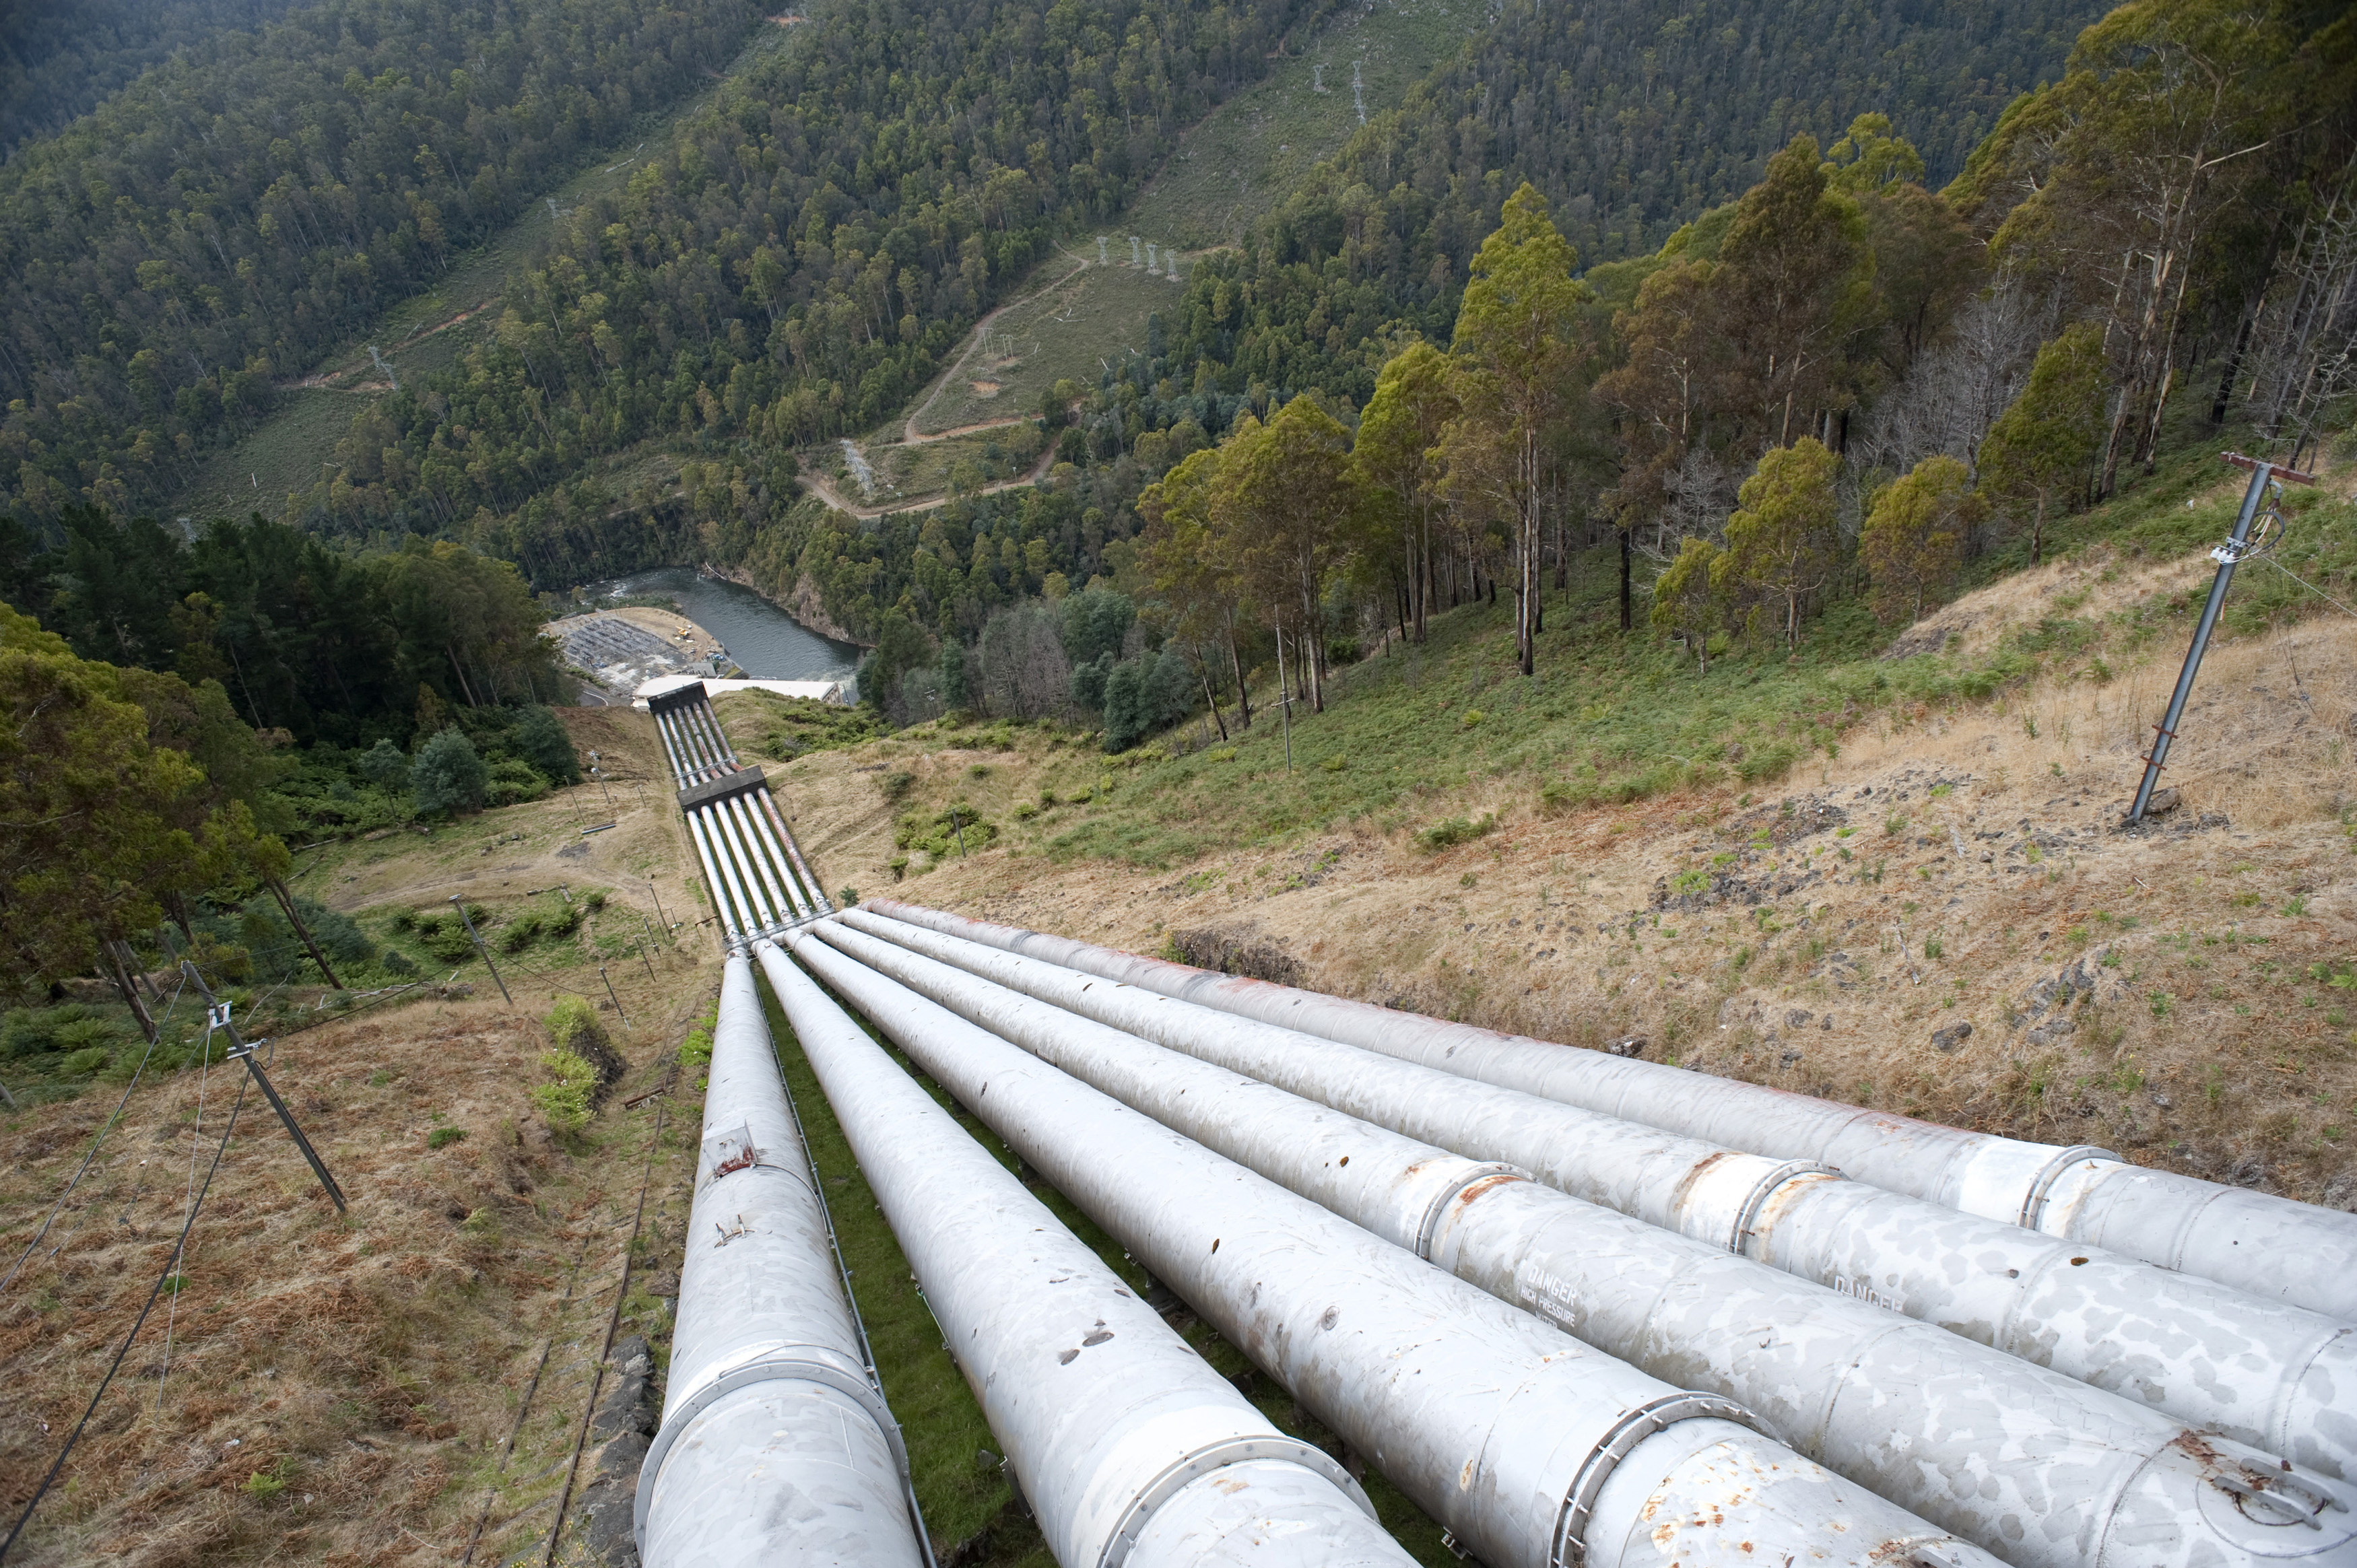 View of a series of water pipes at the Tarraleah Power Station, a hydroelectric power station on the Upper Derwent River in Tasmania